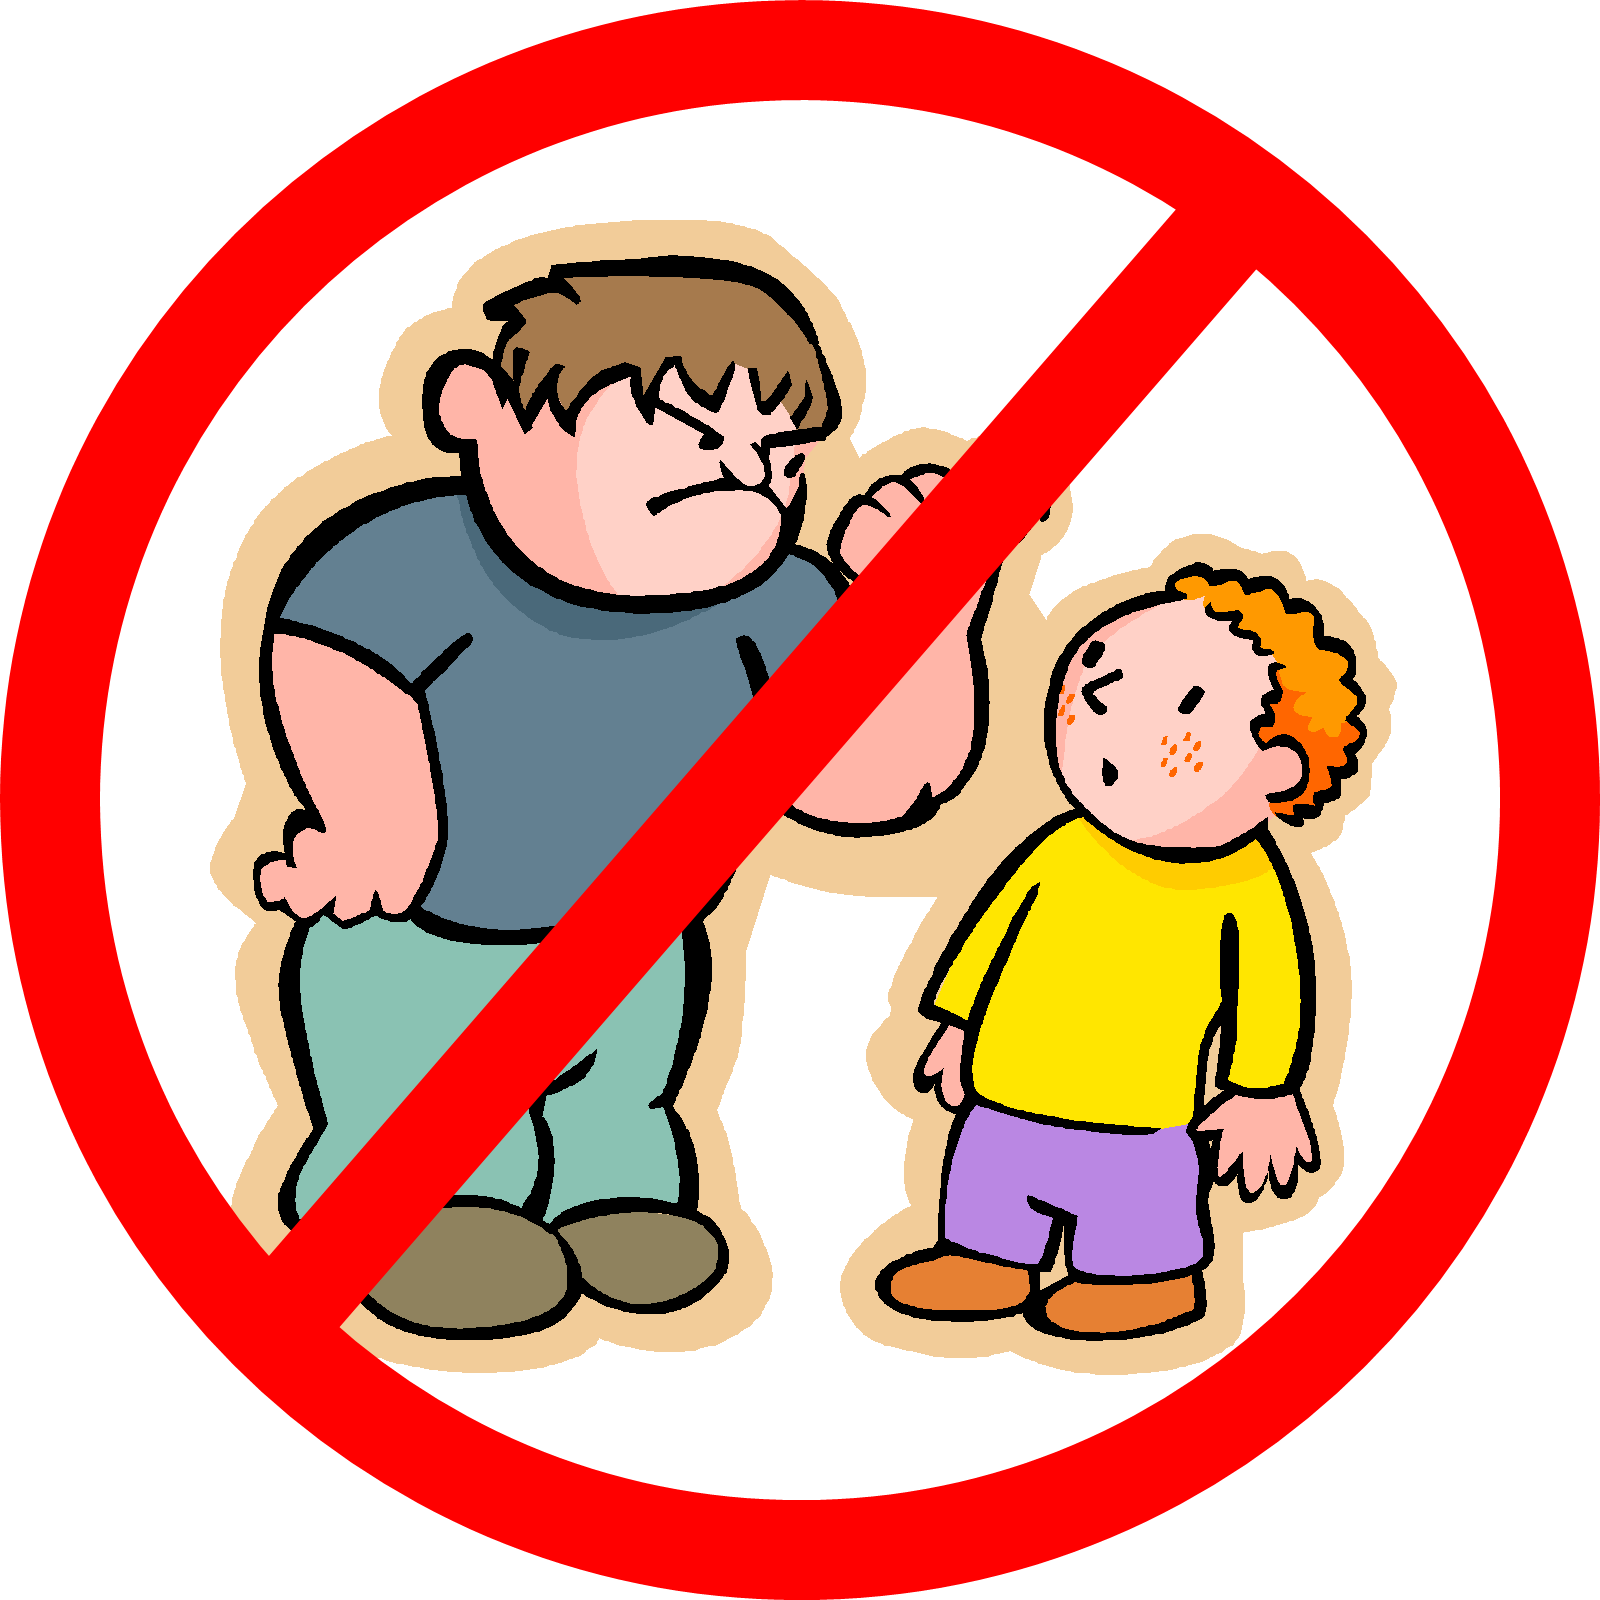 Bullying drawing cartoon. Collection of anti